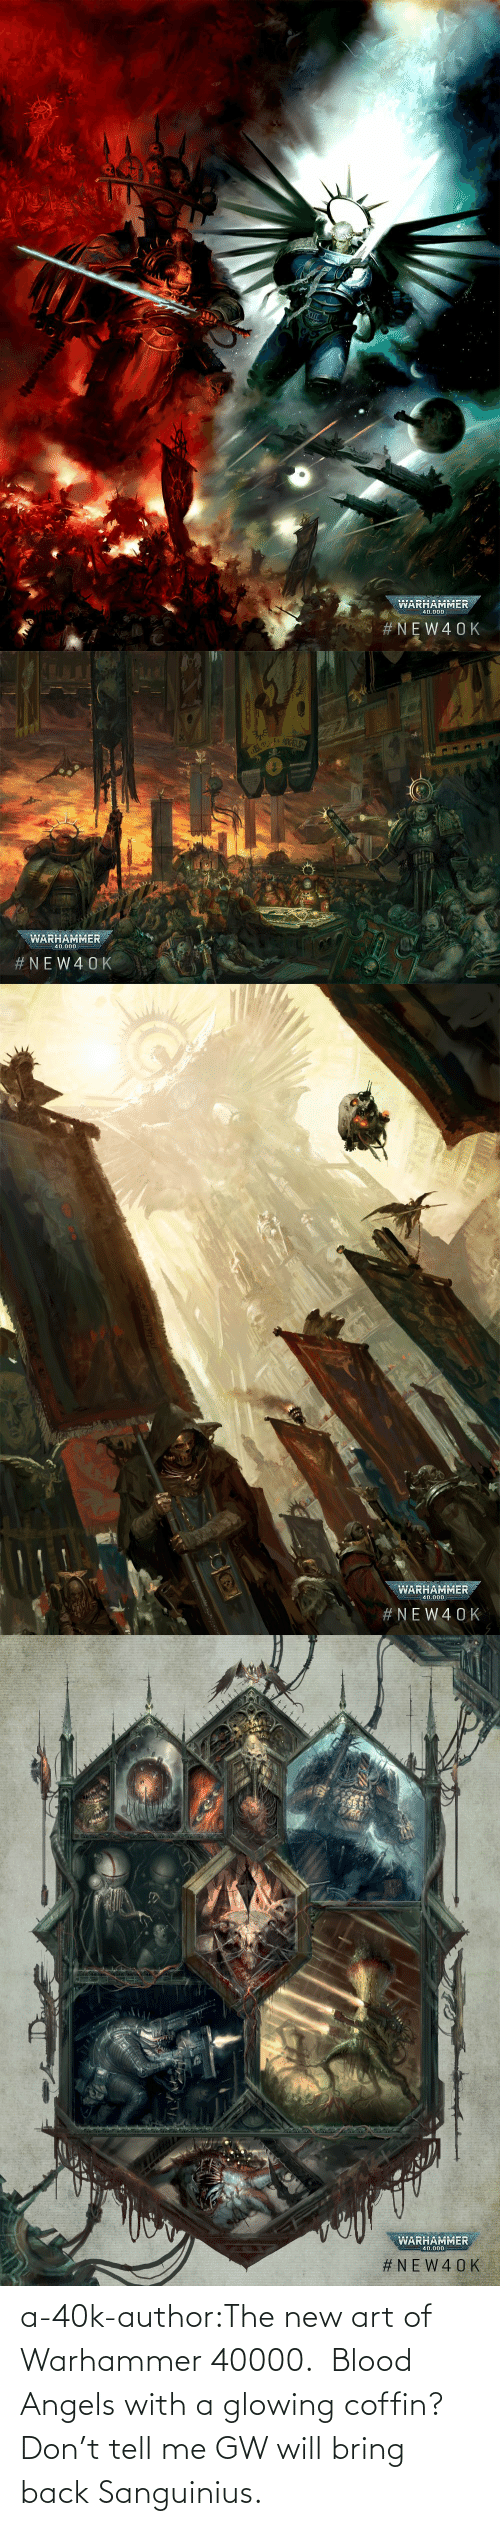 Tumblr, Angels, and Blog: a-40k-author:The new art of Warhammer 40000.   Blood Angels with a glowing coffin?Don't tell me GW will bring back Sanguinius.